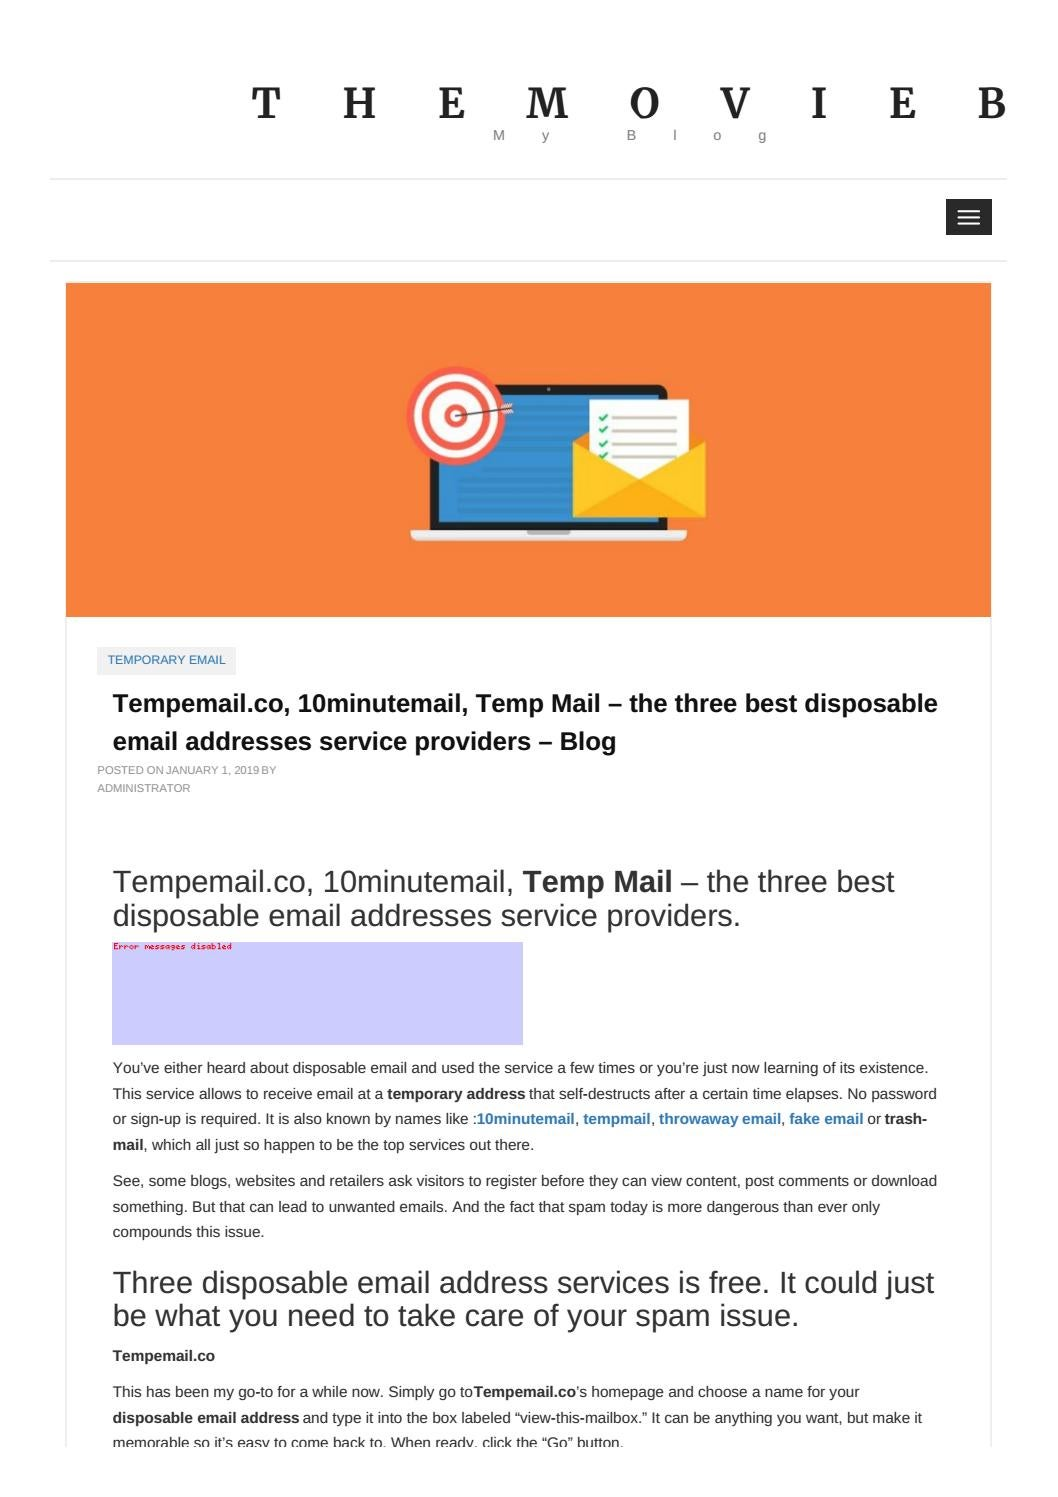 Tempemail co, 10minutemail, Temp Mail – the three best